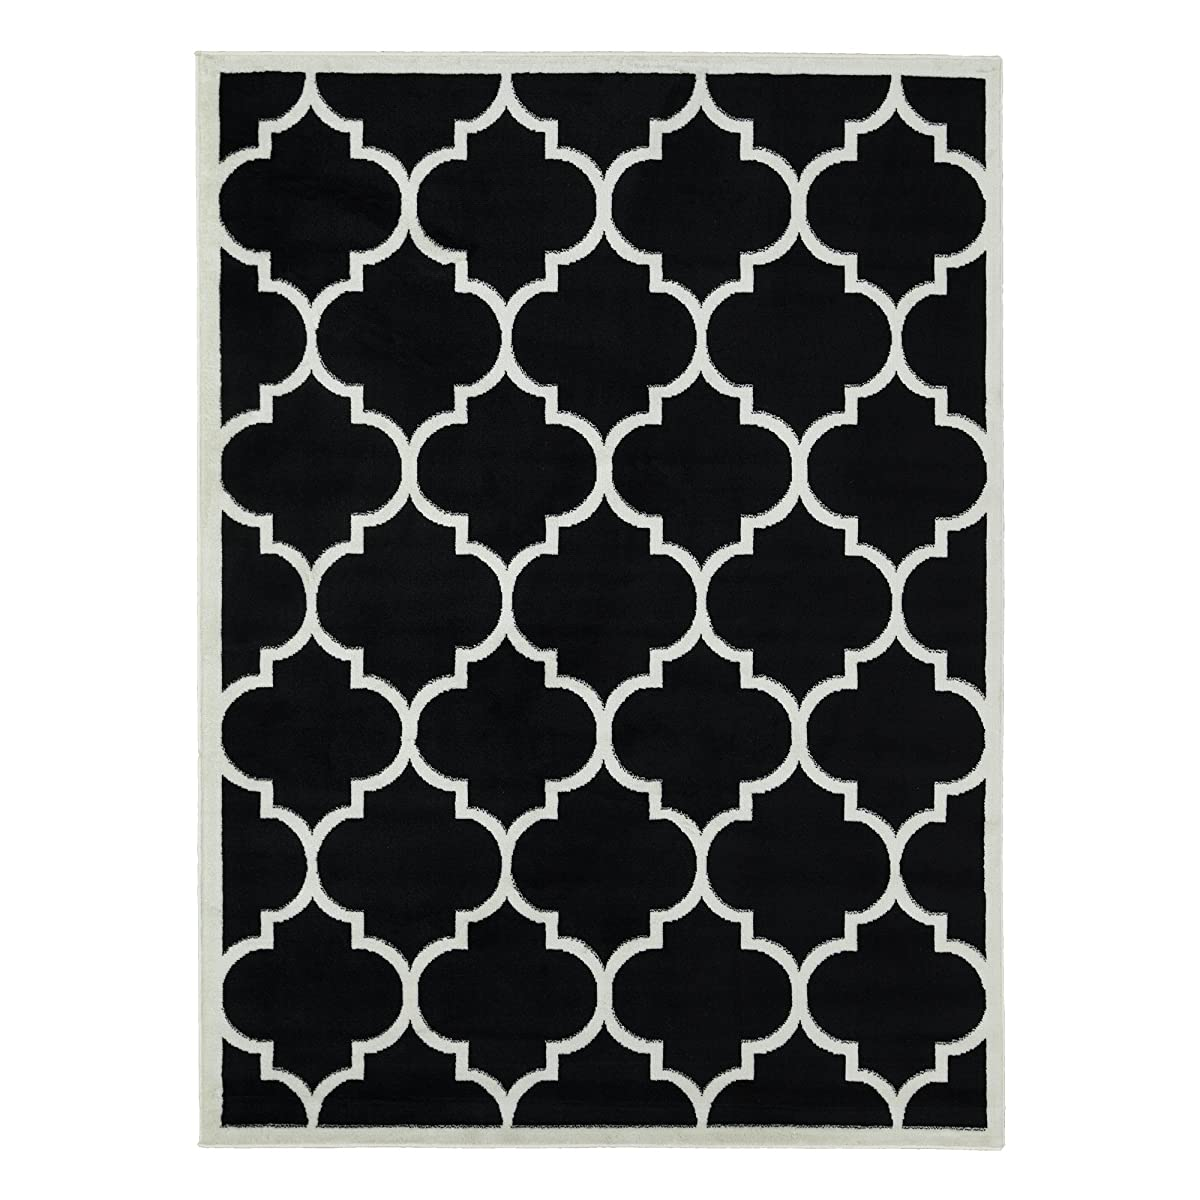 "Ottomanson Paterson Collection Contemporary Moroccan Trellis Design Lattice Area Rug, 710"" X 910"", Black"